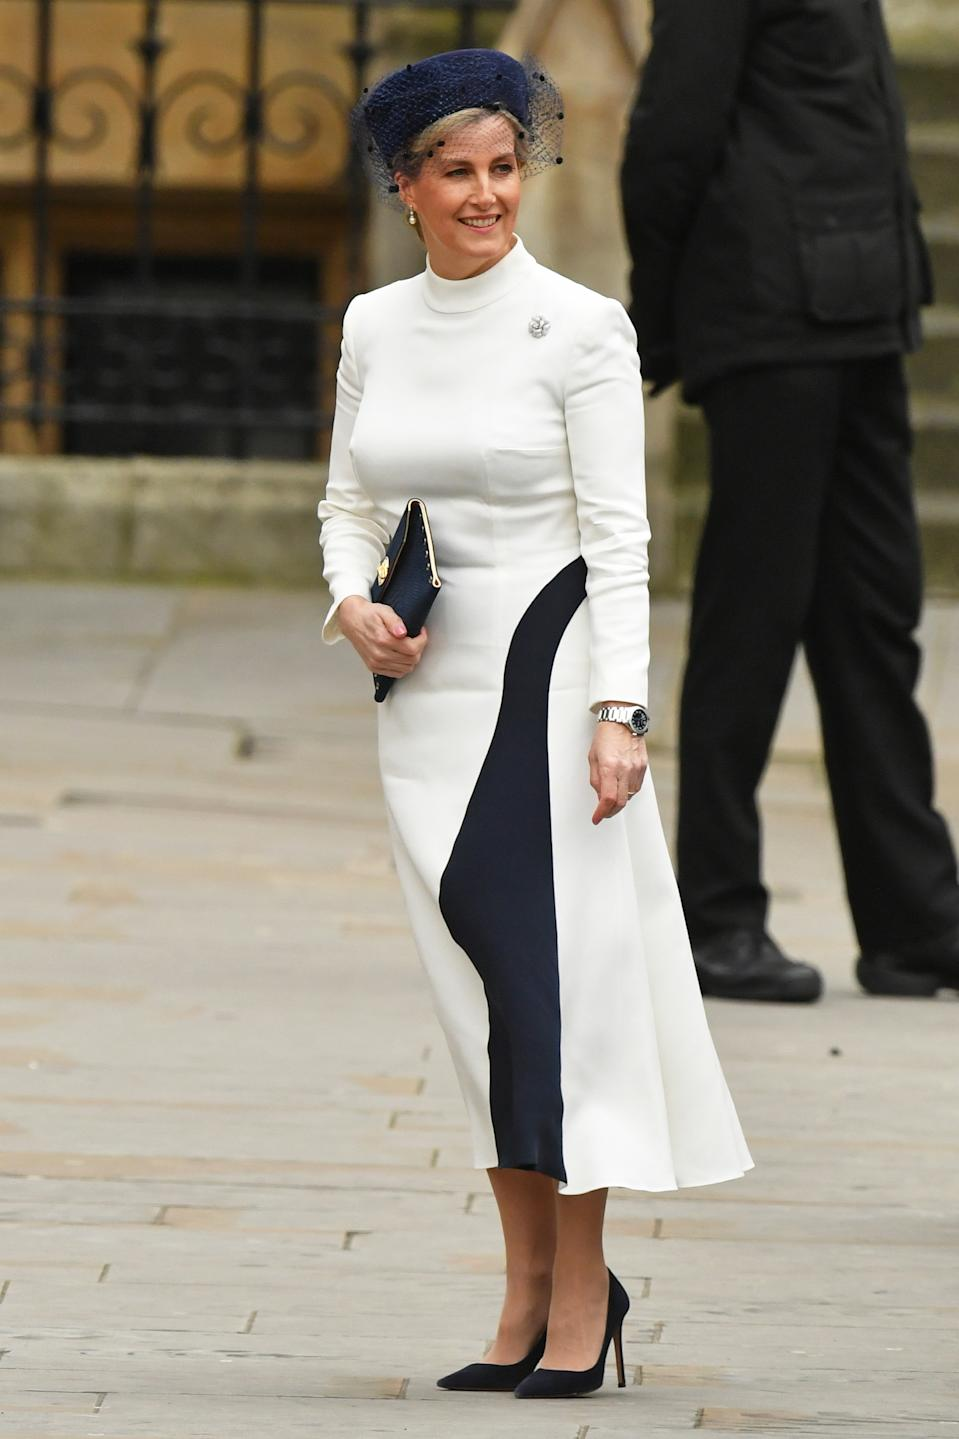 The Countess of Wessex arrives at the Commonwealth Service at Westminster Abbey, London on Commonwealth Day. The service is the Duke and Duchess of Sussex's final official engagement before they quit royal life.